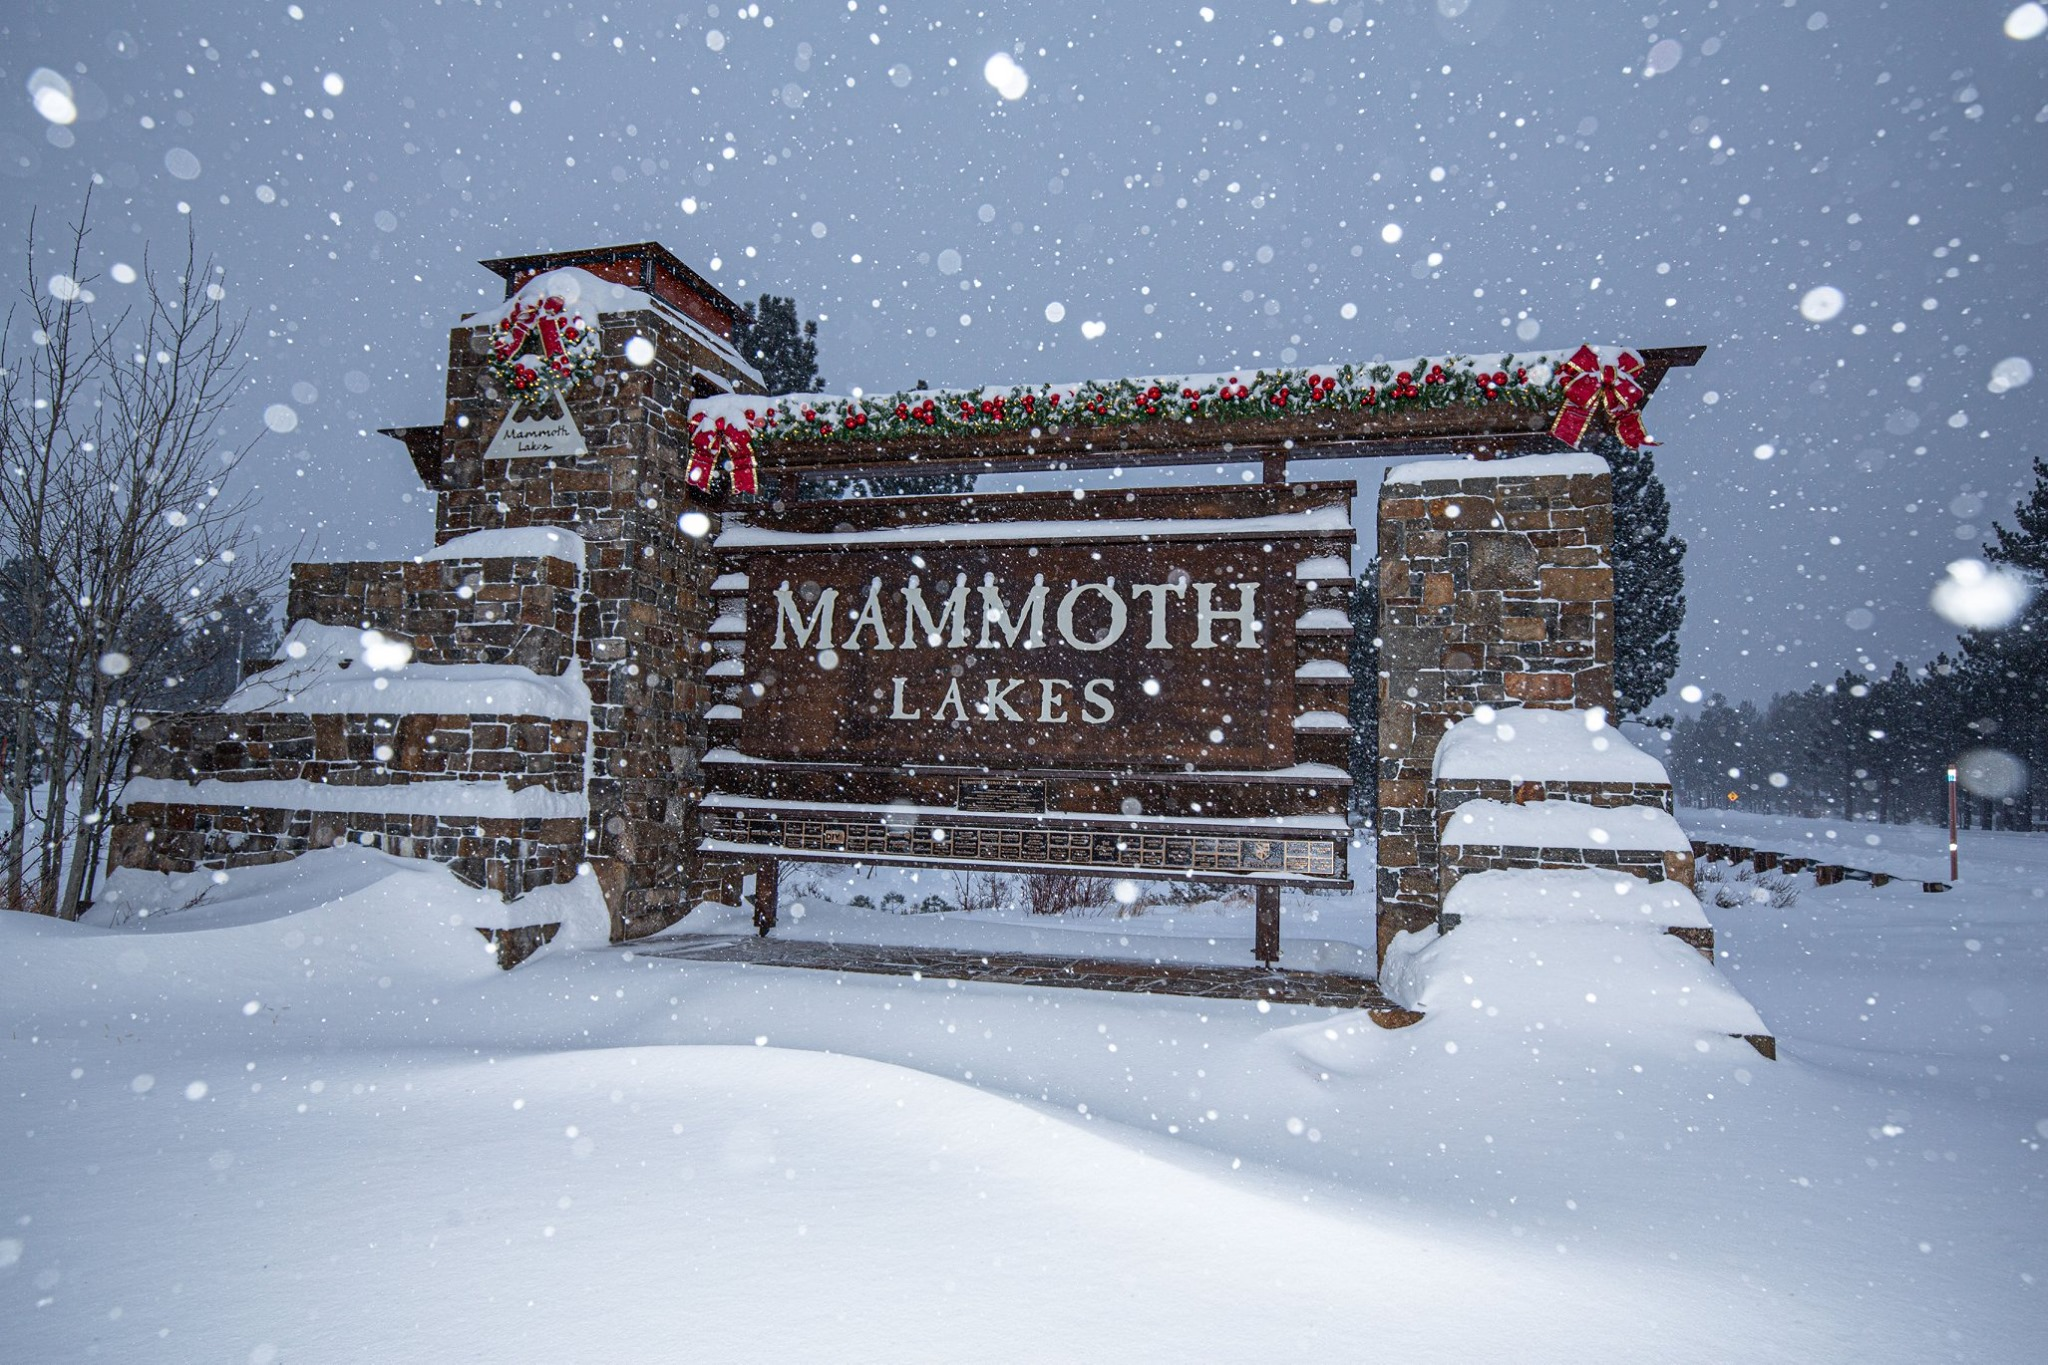 more than 60cm (2ft), Mammoth Mountain